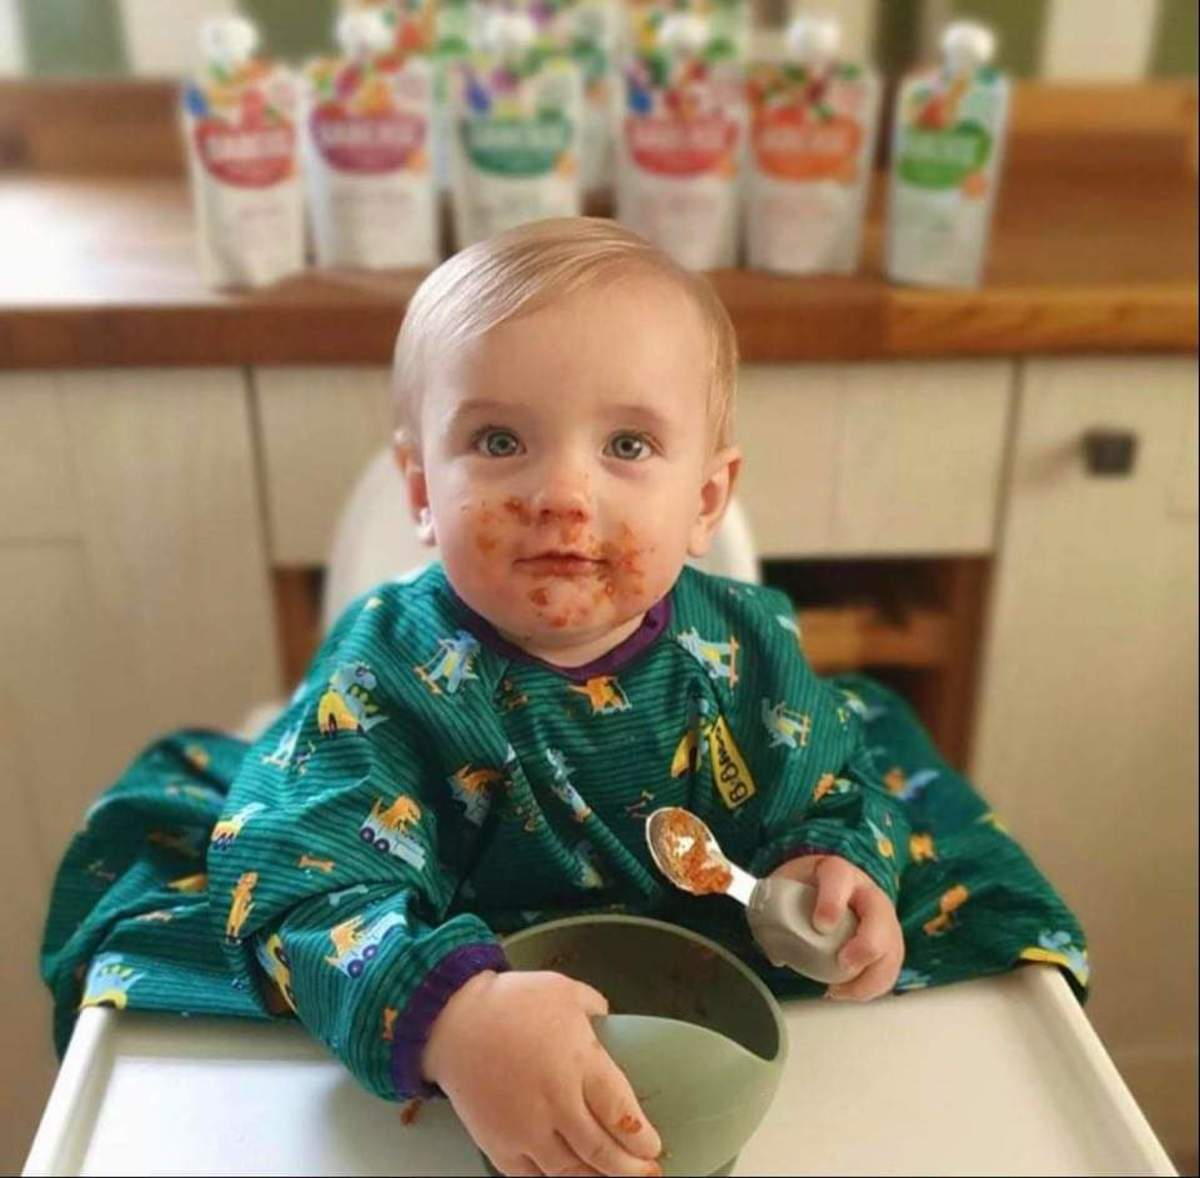 A weaning baby eating milk free food